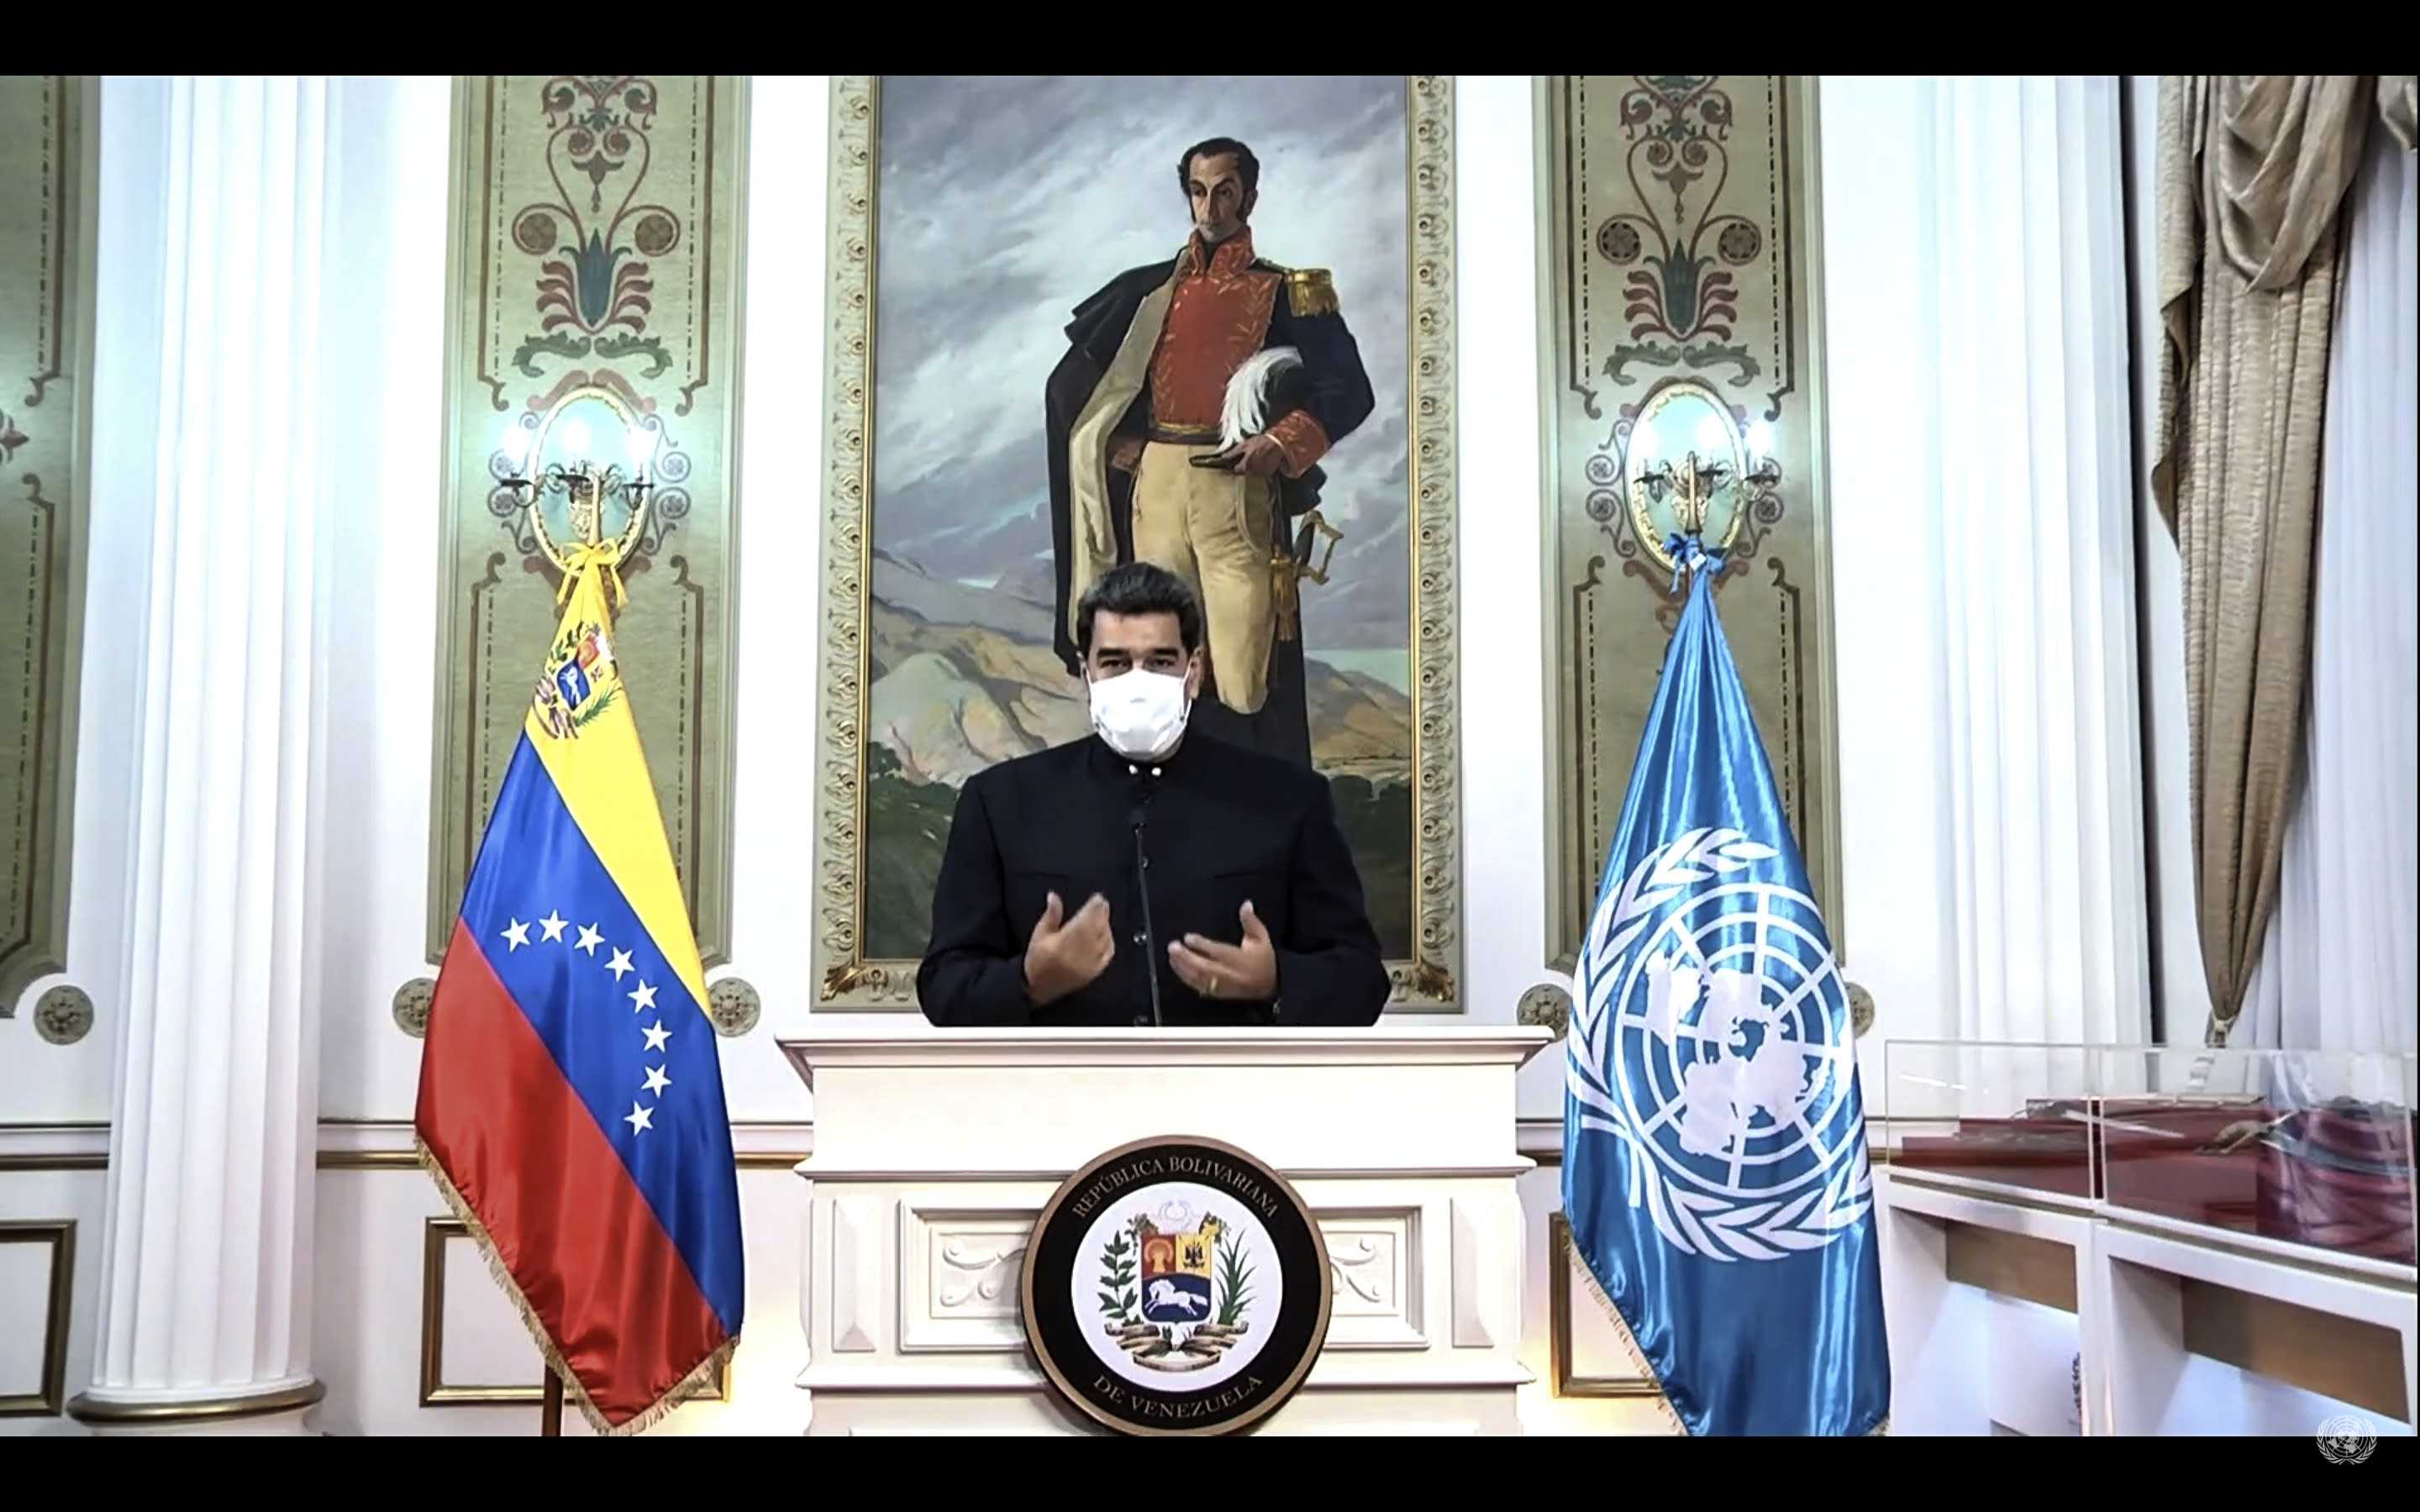 In this UNTV image, Nicolás Maduro Moros, President of Venezuela, wears a mask as he speaks in a pre-recorded video message during the 75th session of the United Nations General Assembly, Wednesday, Sept. 23, 2020, at UN headquarters in New York. The U.N.'s first virtual meeting of world leaders started Tuesday with pre-recorded speeches from heads-of-state, kept at home by the coronavirus pandemic. (UNTV via AP)